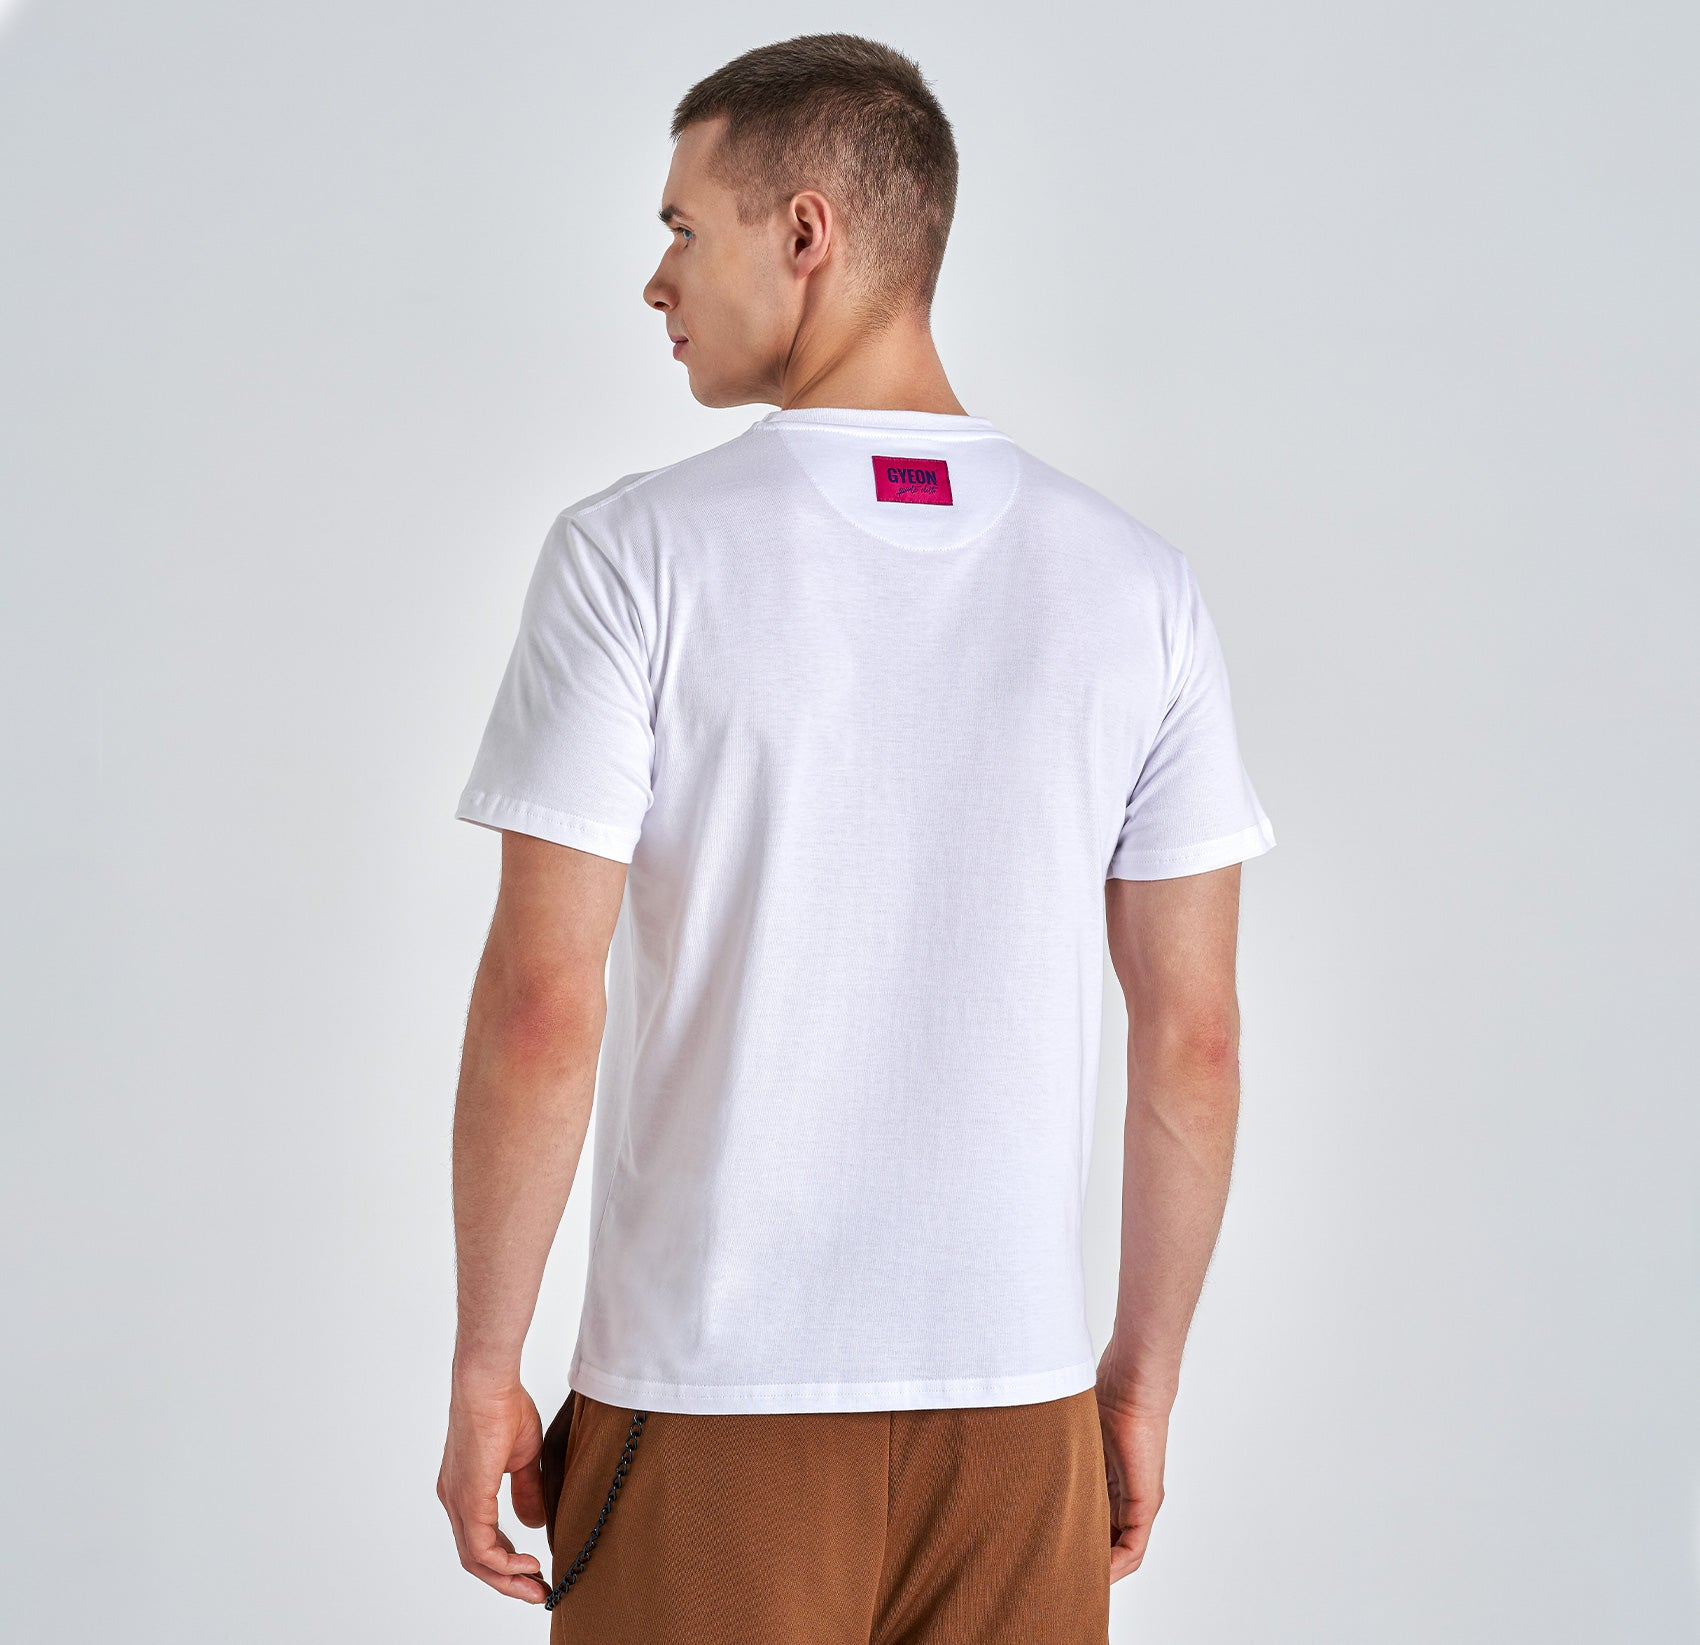 T-SHIRT WHITE - GYEON GCC